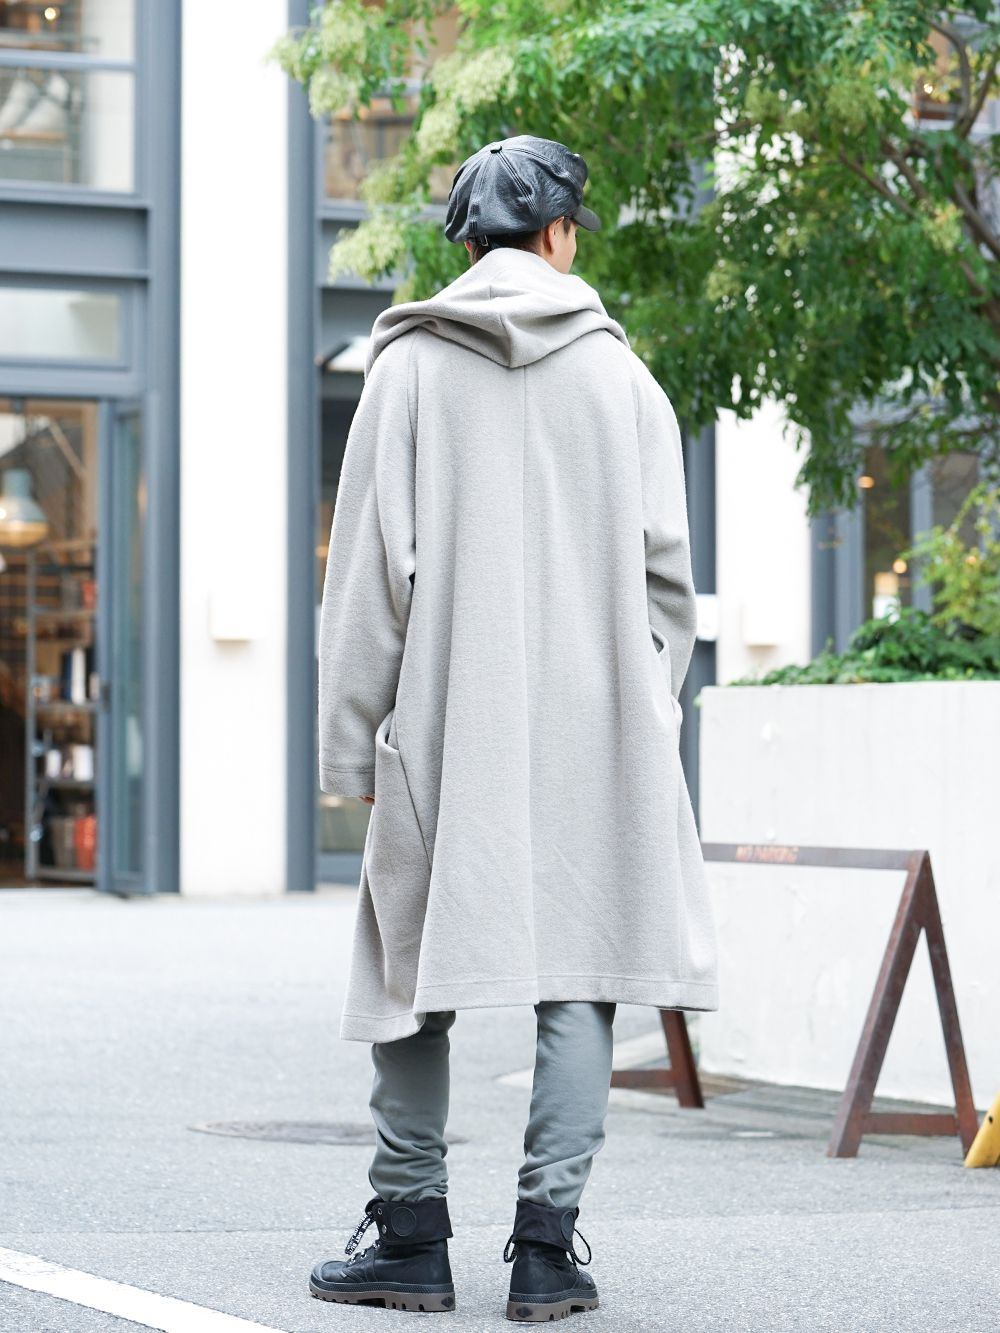 DBSS Light color Autumn styling - 1-003